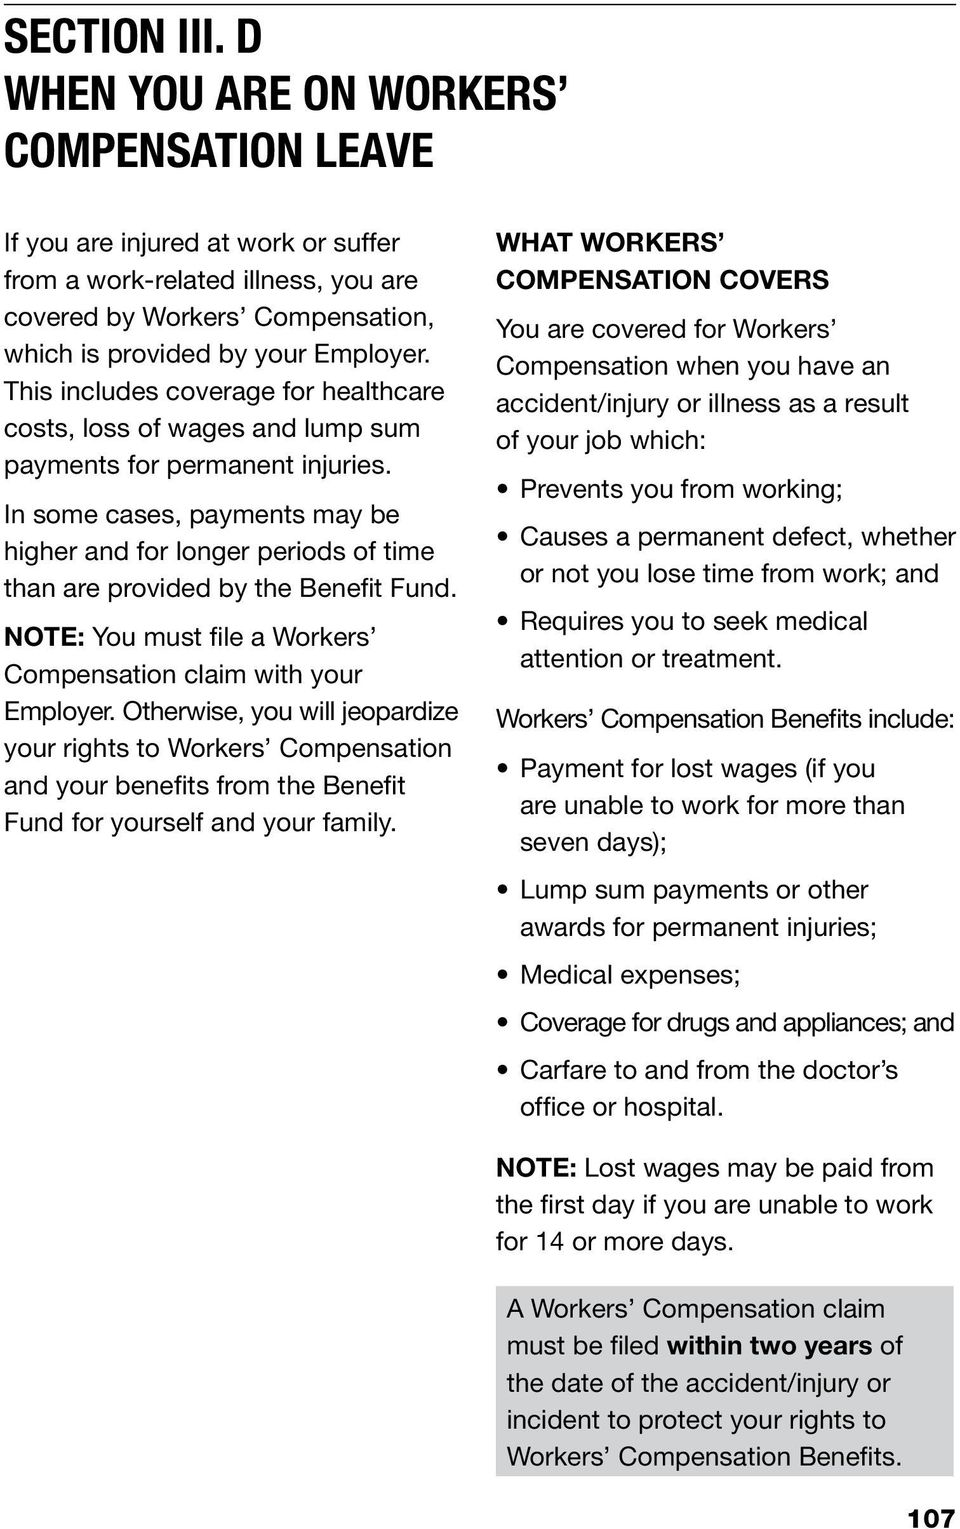 In some cases, payments may be higher and for longer periods of time than are provided by the Benefit Fund. NOTE: You must file a Workers Compensation claim with your Employer.